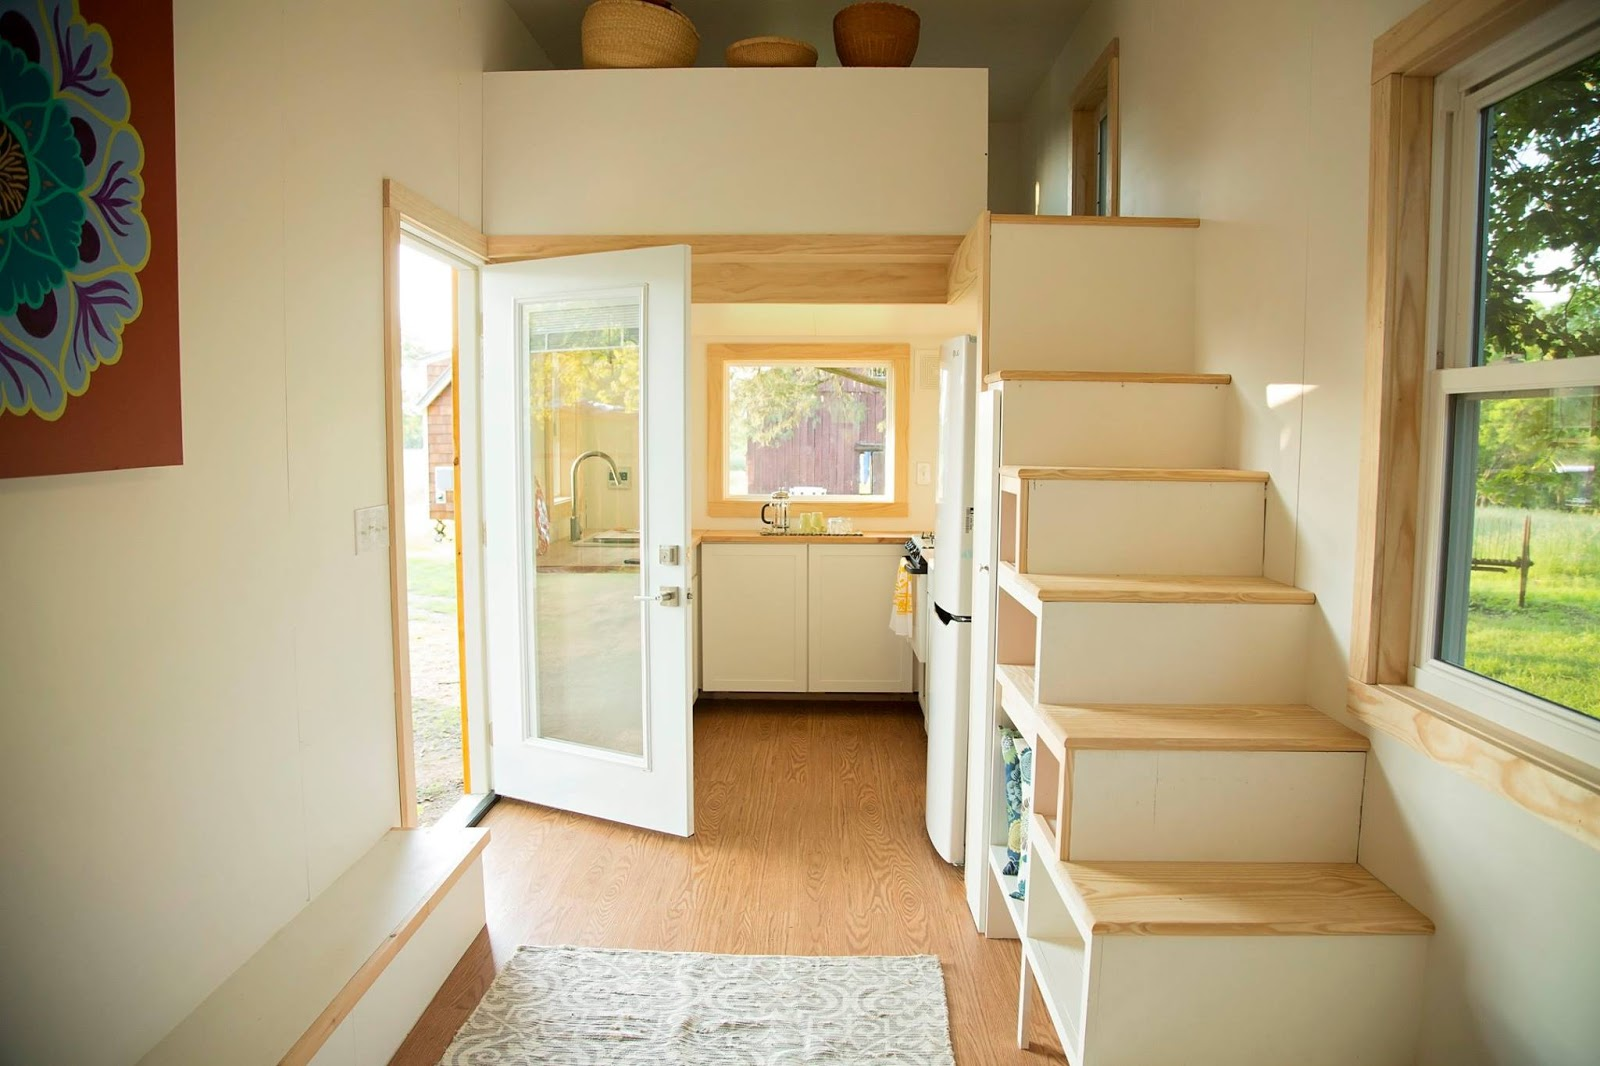 TINY HOUSE TOWN: The Boho Home From Perch and Nest on bad modern building, bad apartment building, bad idea house building, bad team building, cheap home building,